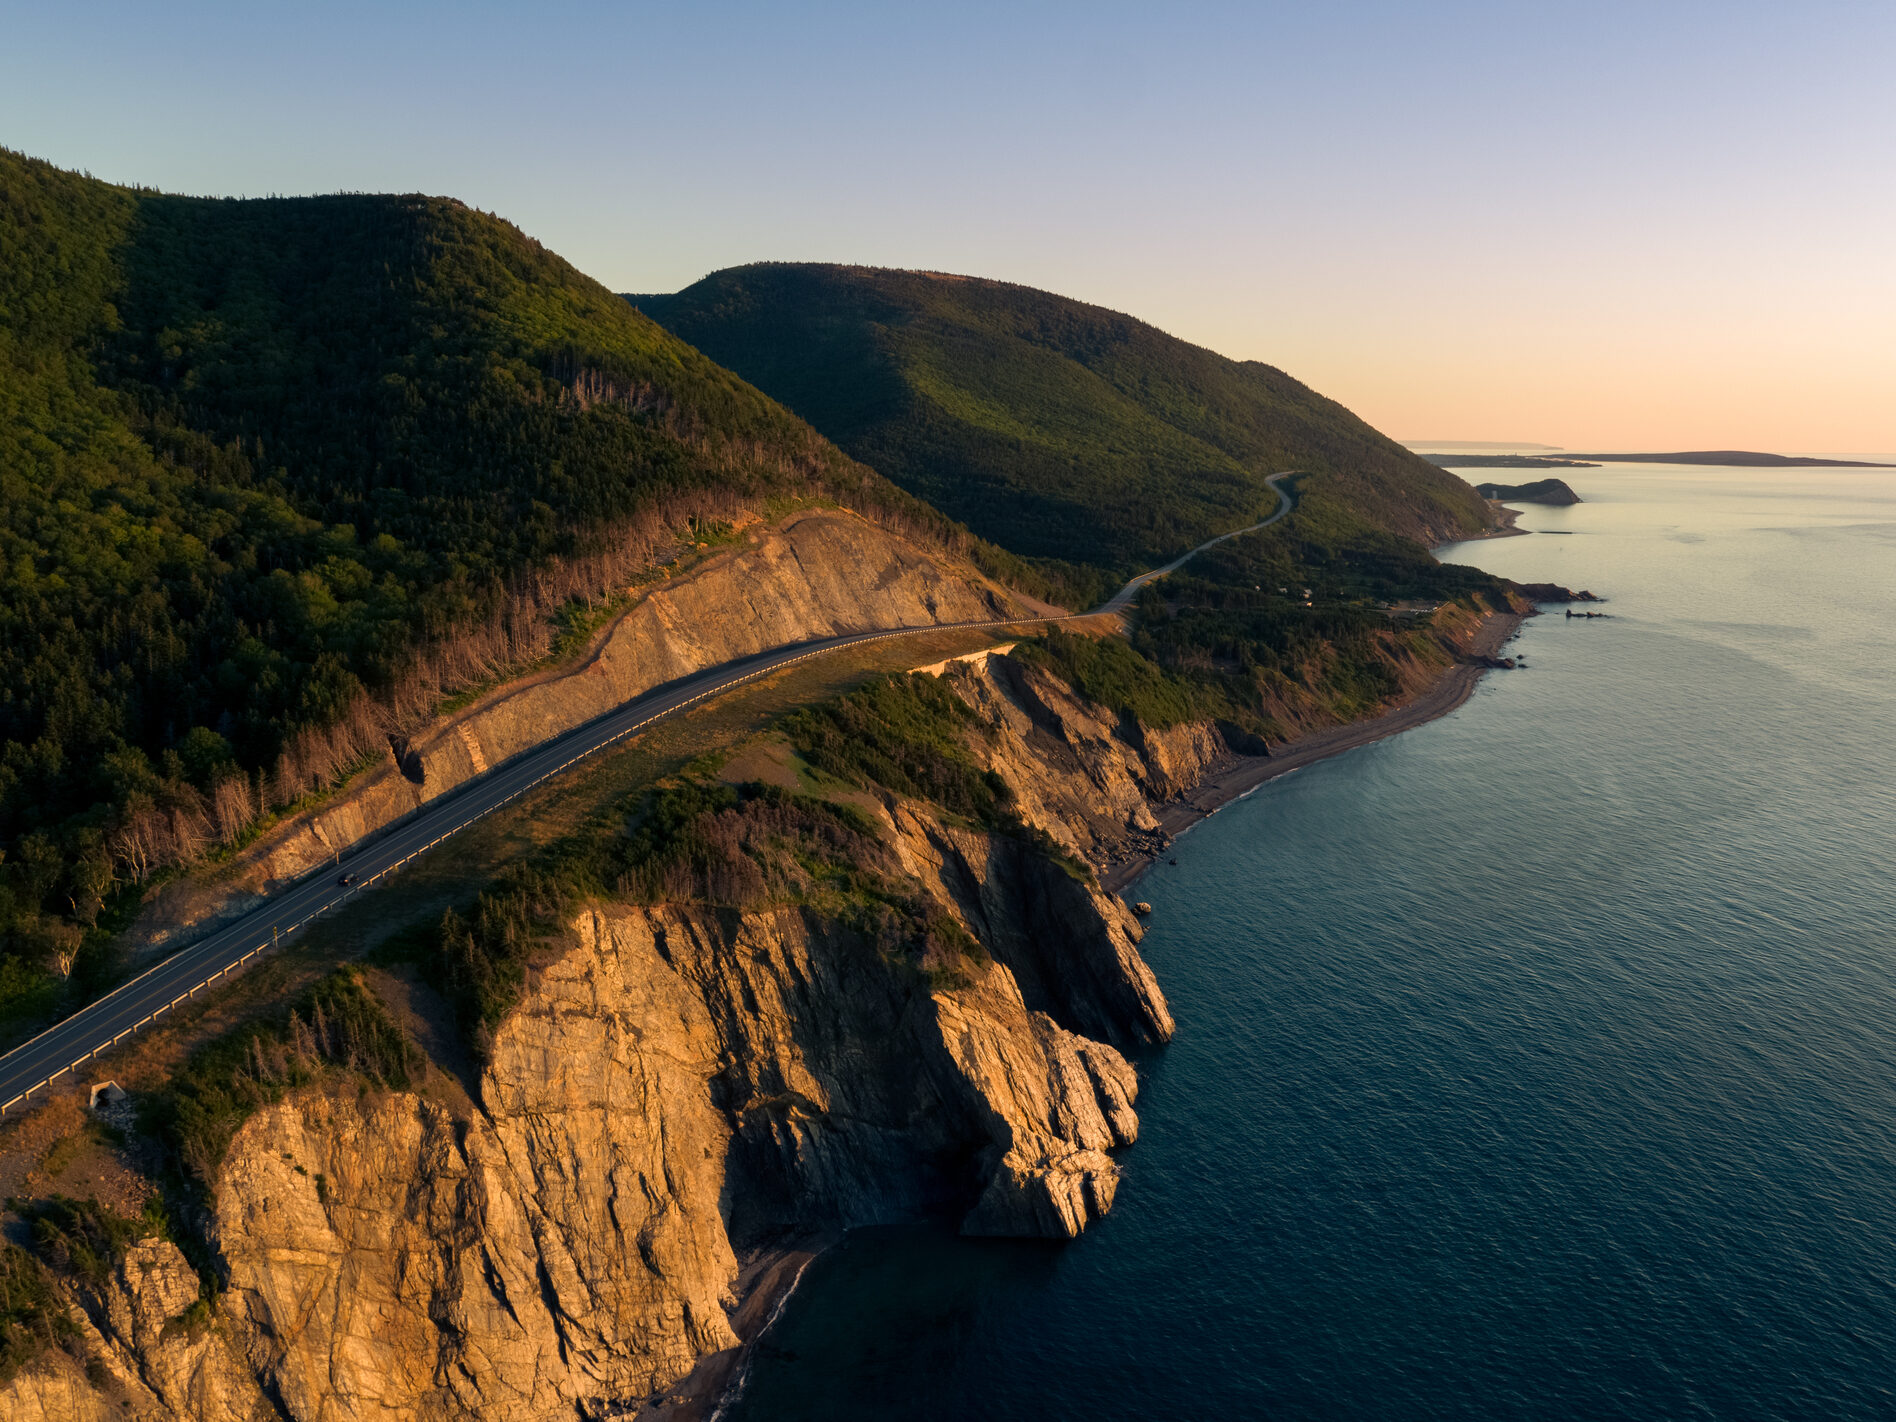 Cap Rouge section of the Cabot Trail with cliffs and ocean lit by the golden glow of a sunset